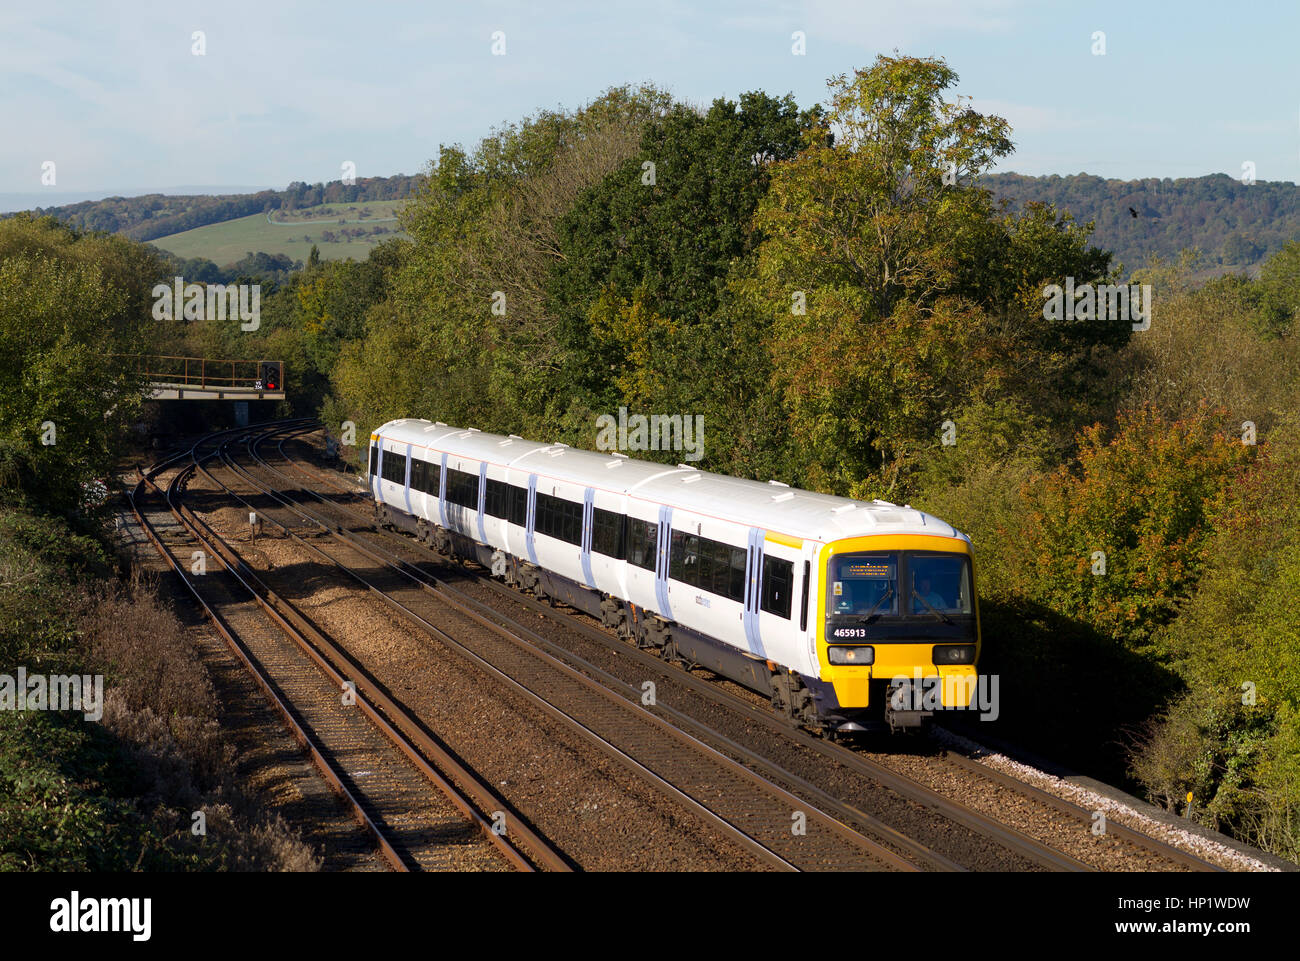 OTFORD JUNCTION, KENT, ENGLAND - OCTOBER 21ST 2010 - A British Rail Class 465 Networker electric multiple unit operated - Stock Image